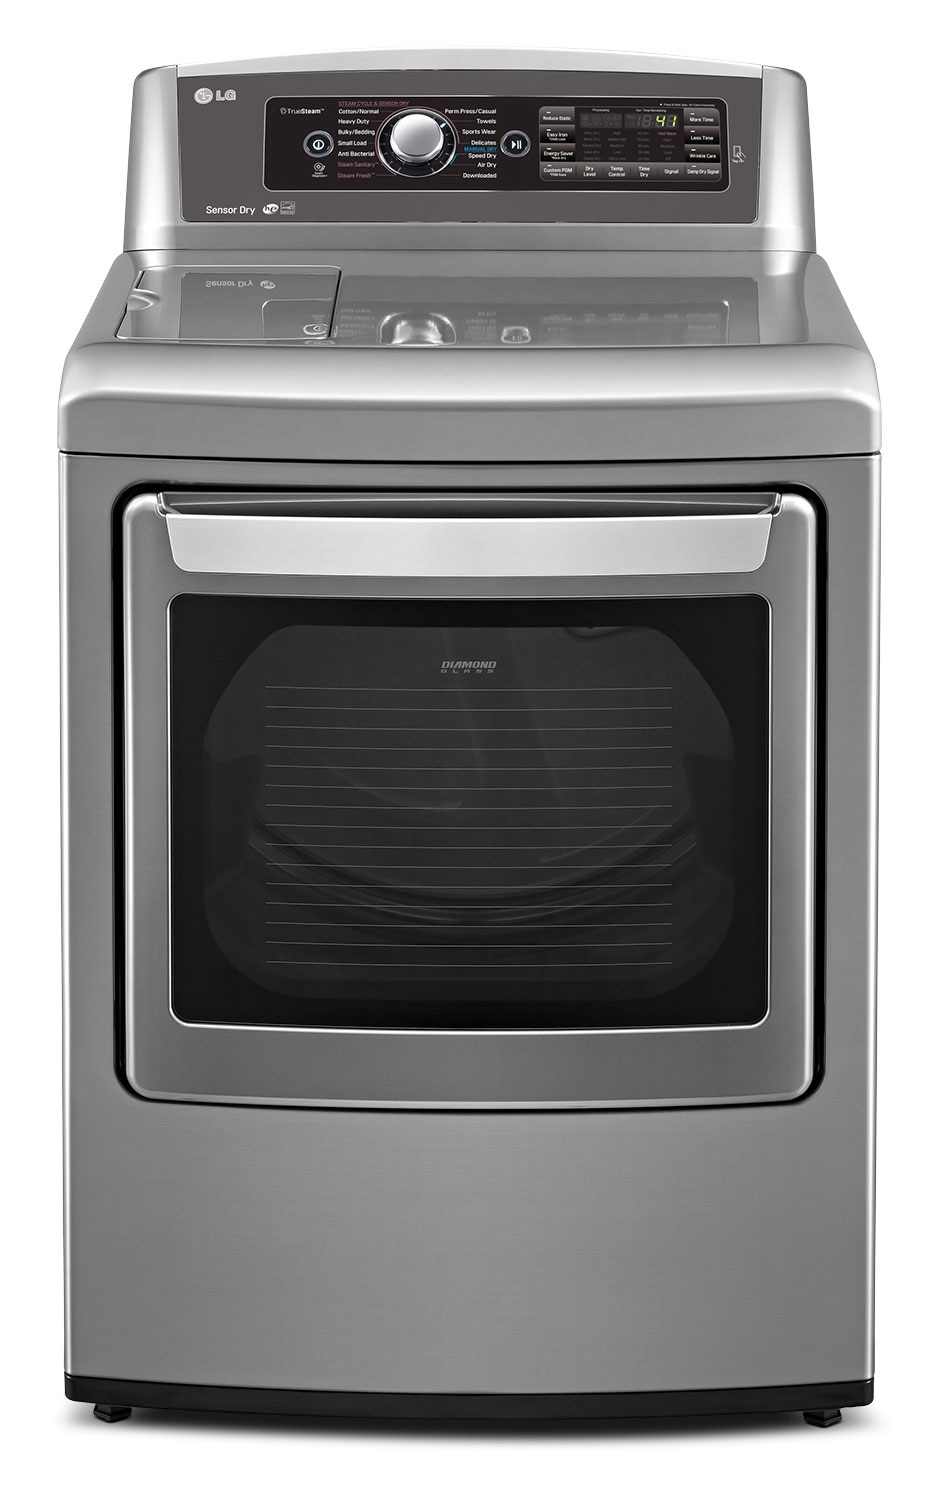 Washers and Dryers - LG Graphite Steel Electric Dryer (7.3 Cu. Ft.) - DLEX5780VE